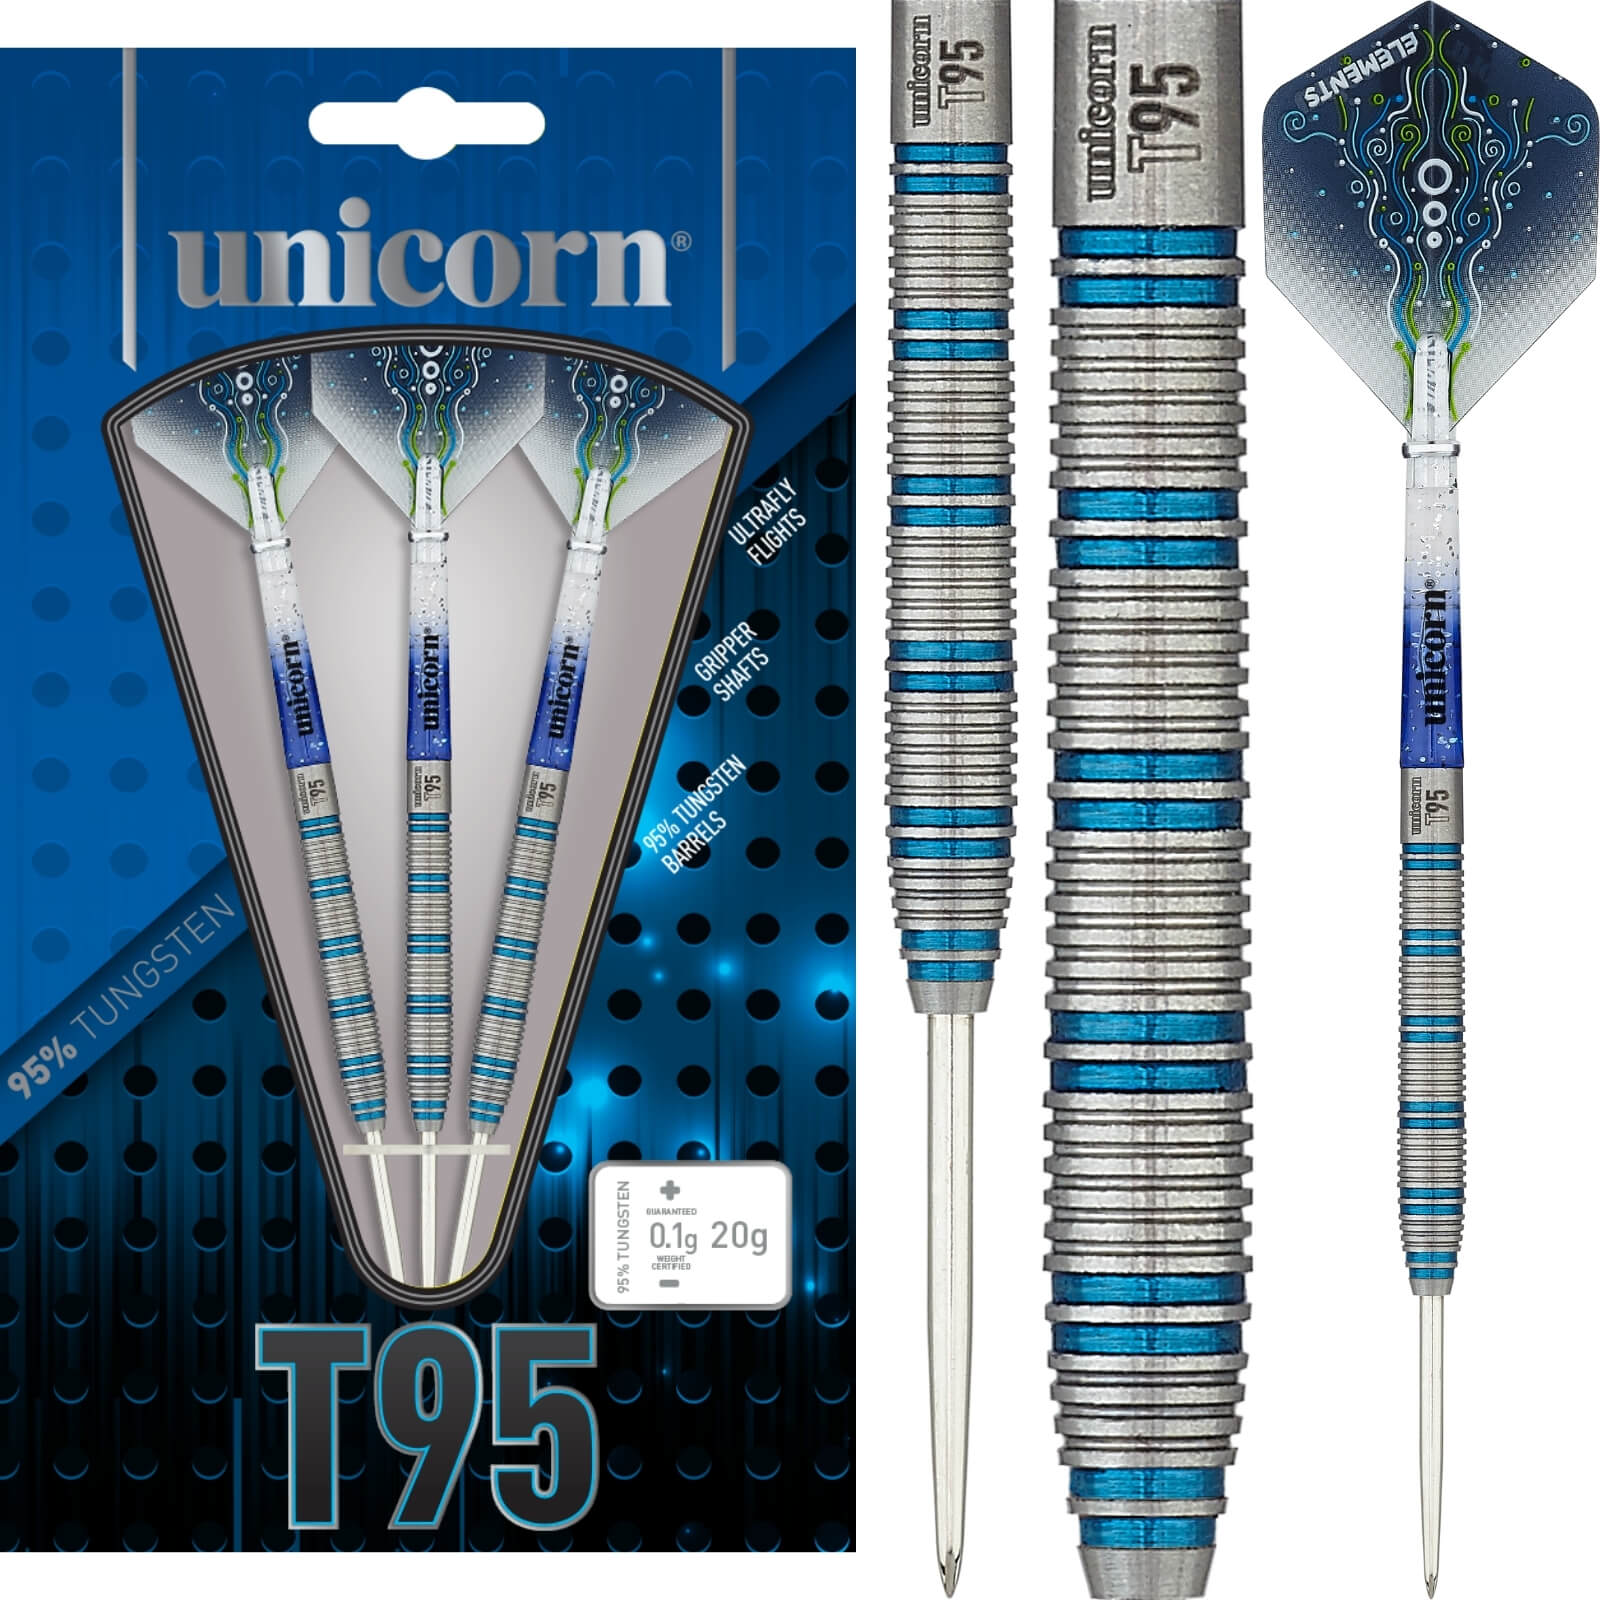 Darts - Unicorn - T95 Core XL Blue Type 1 Darts - Steel Tip - 95% Tungsten - 20g 22g 24g